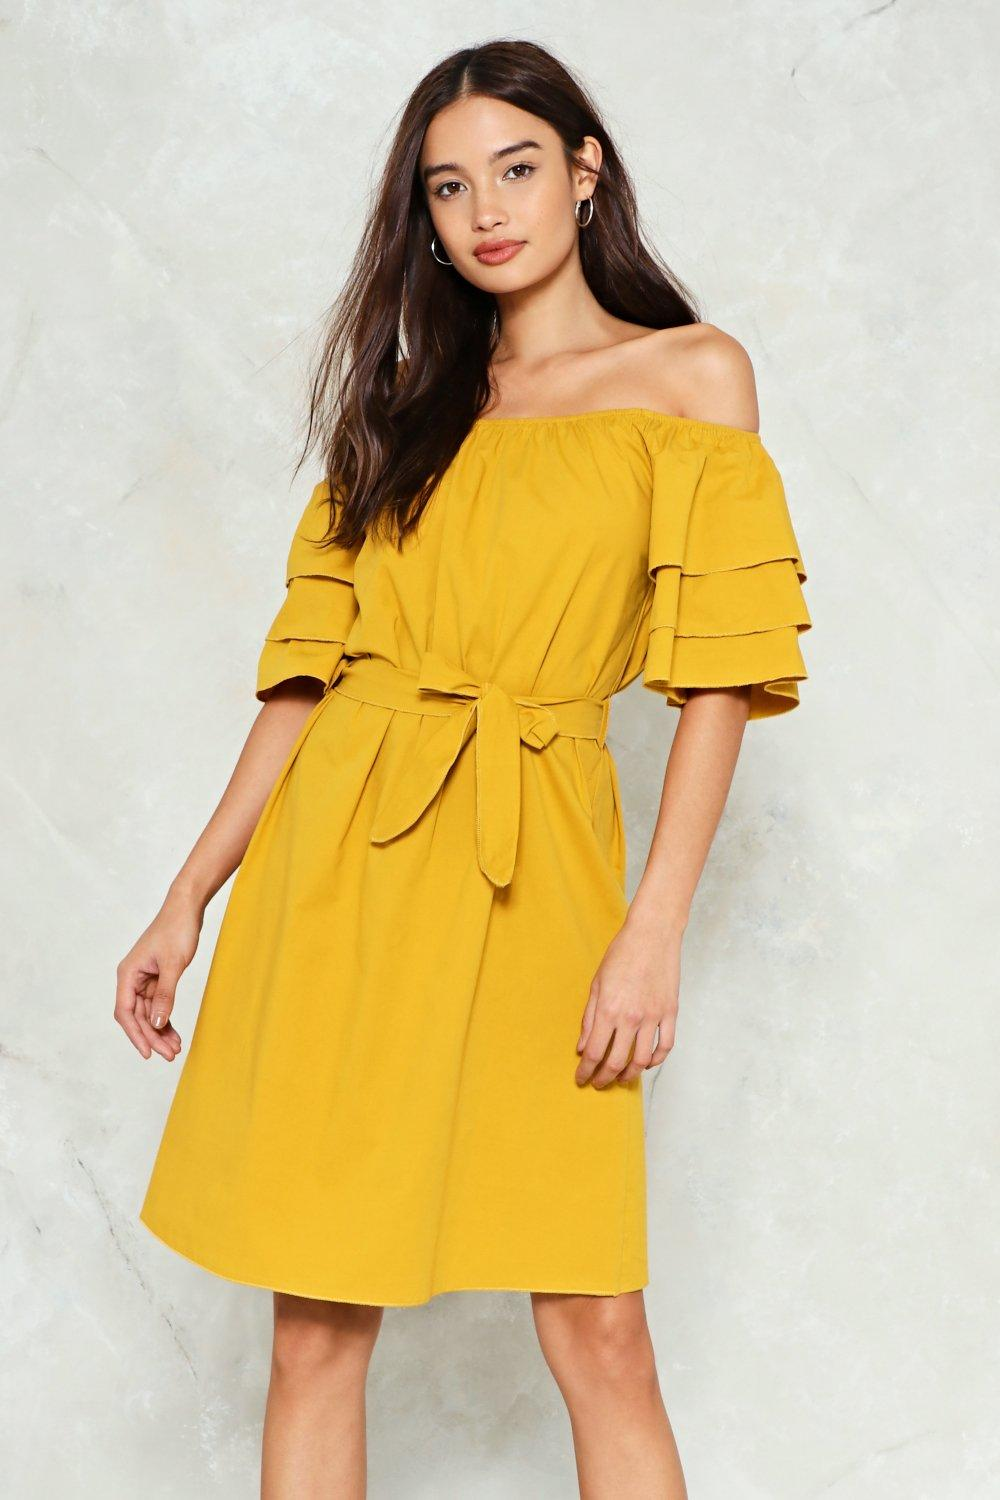 586ca9df5021 The Tier and Now Off-the-Shoulder Dress